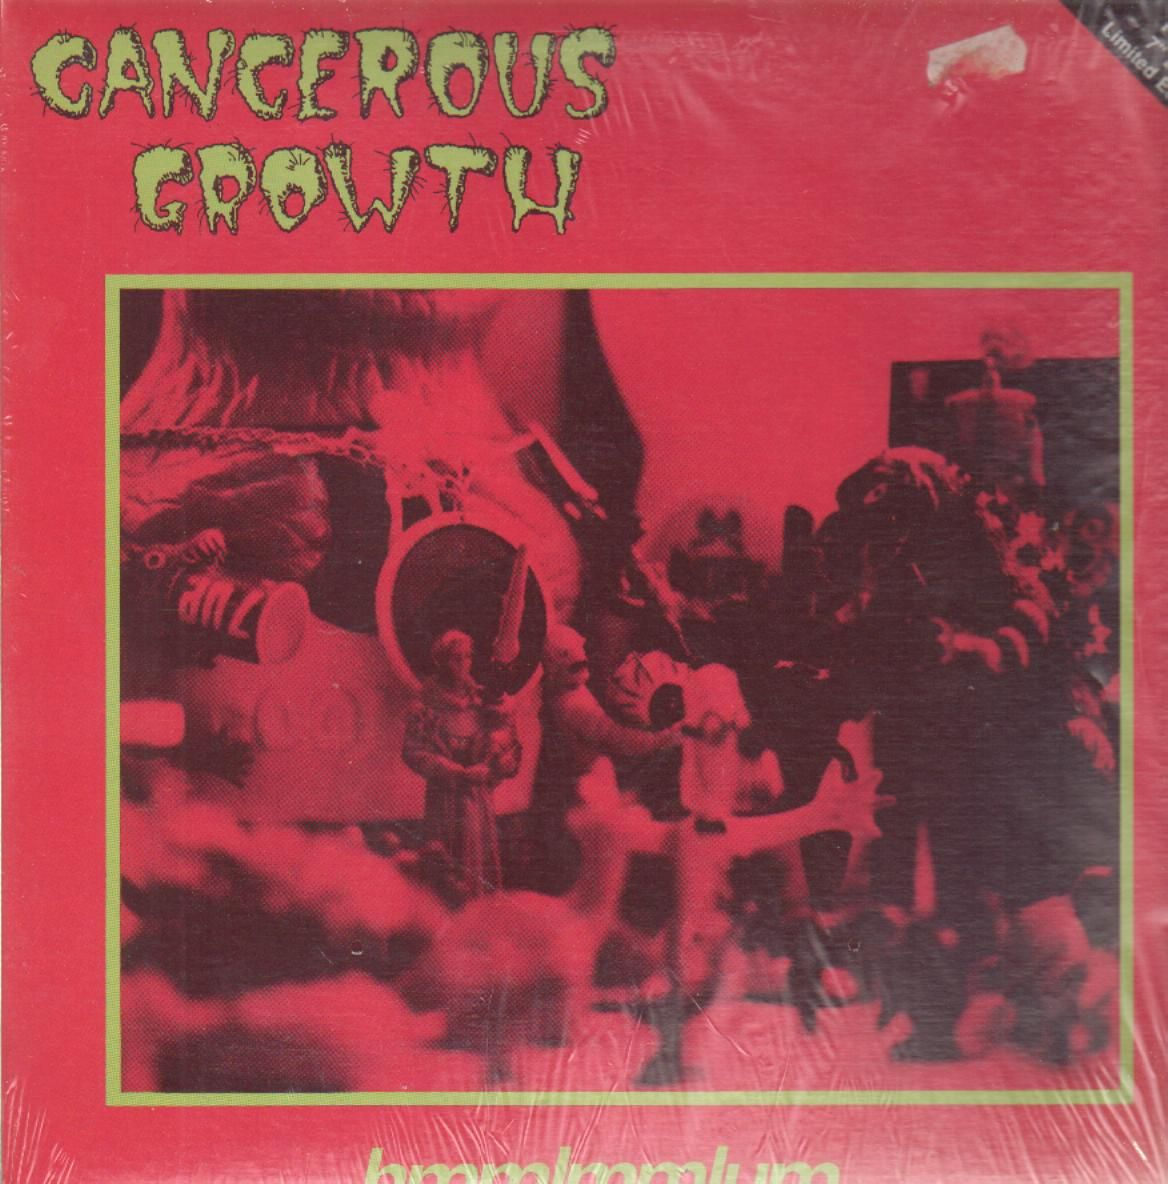 Cancerous Growth - Hmmlmmlum... 1987